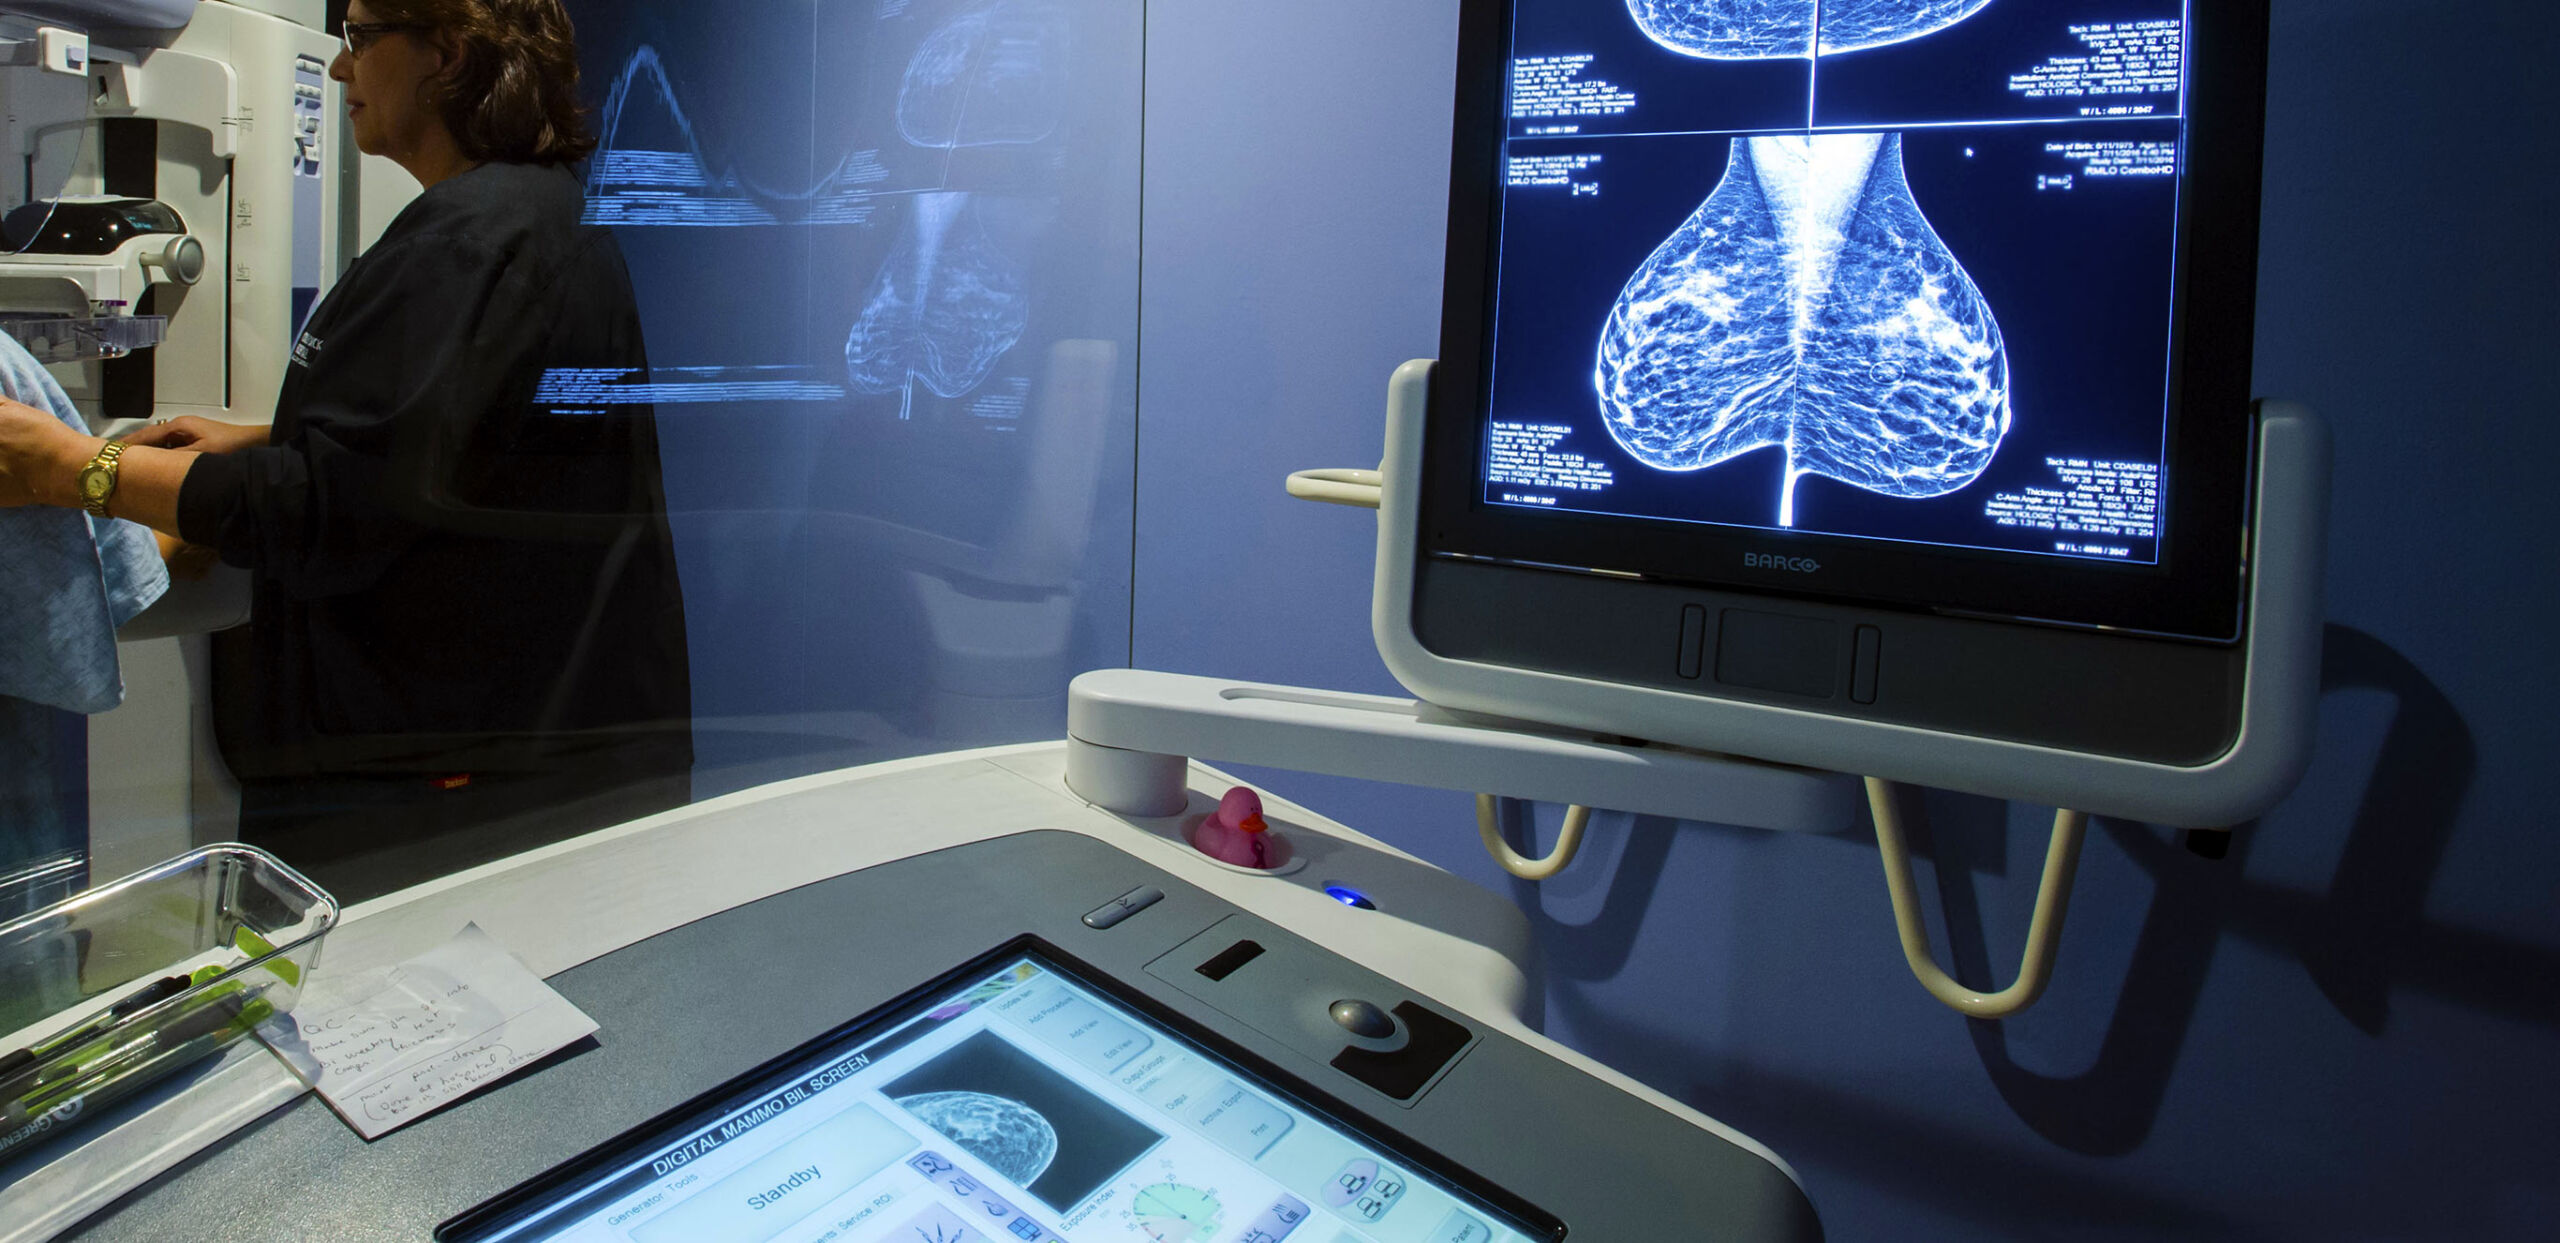 Mammography station, Cooley Dickinson Radiology & Imaging, Amherst, MA